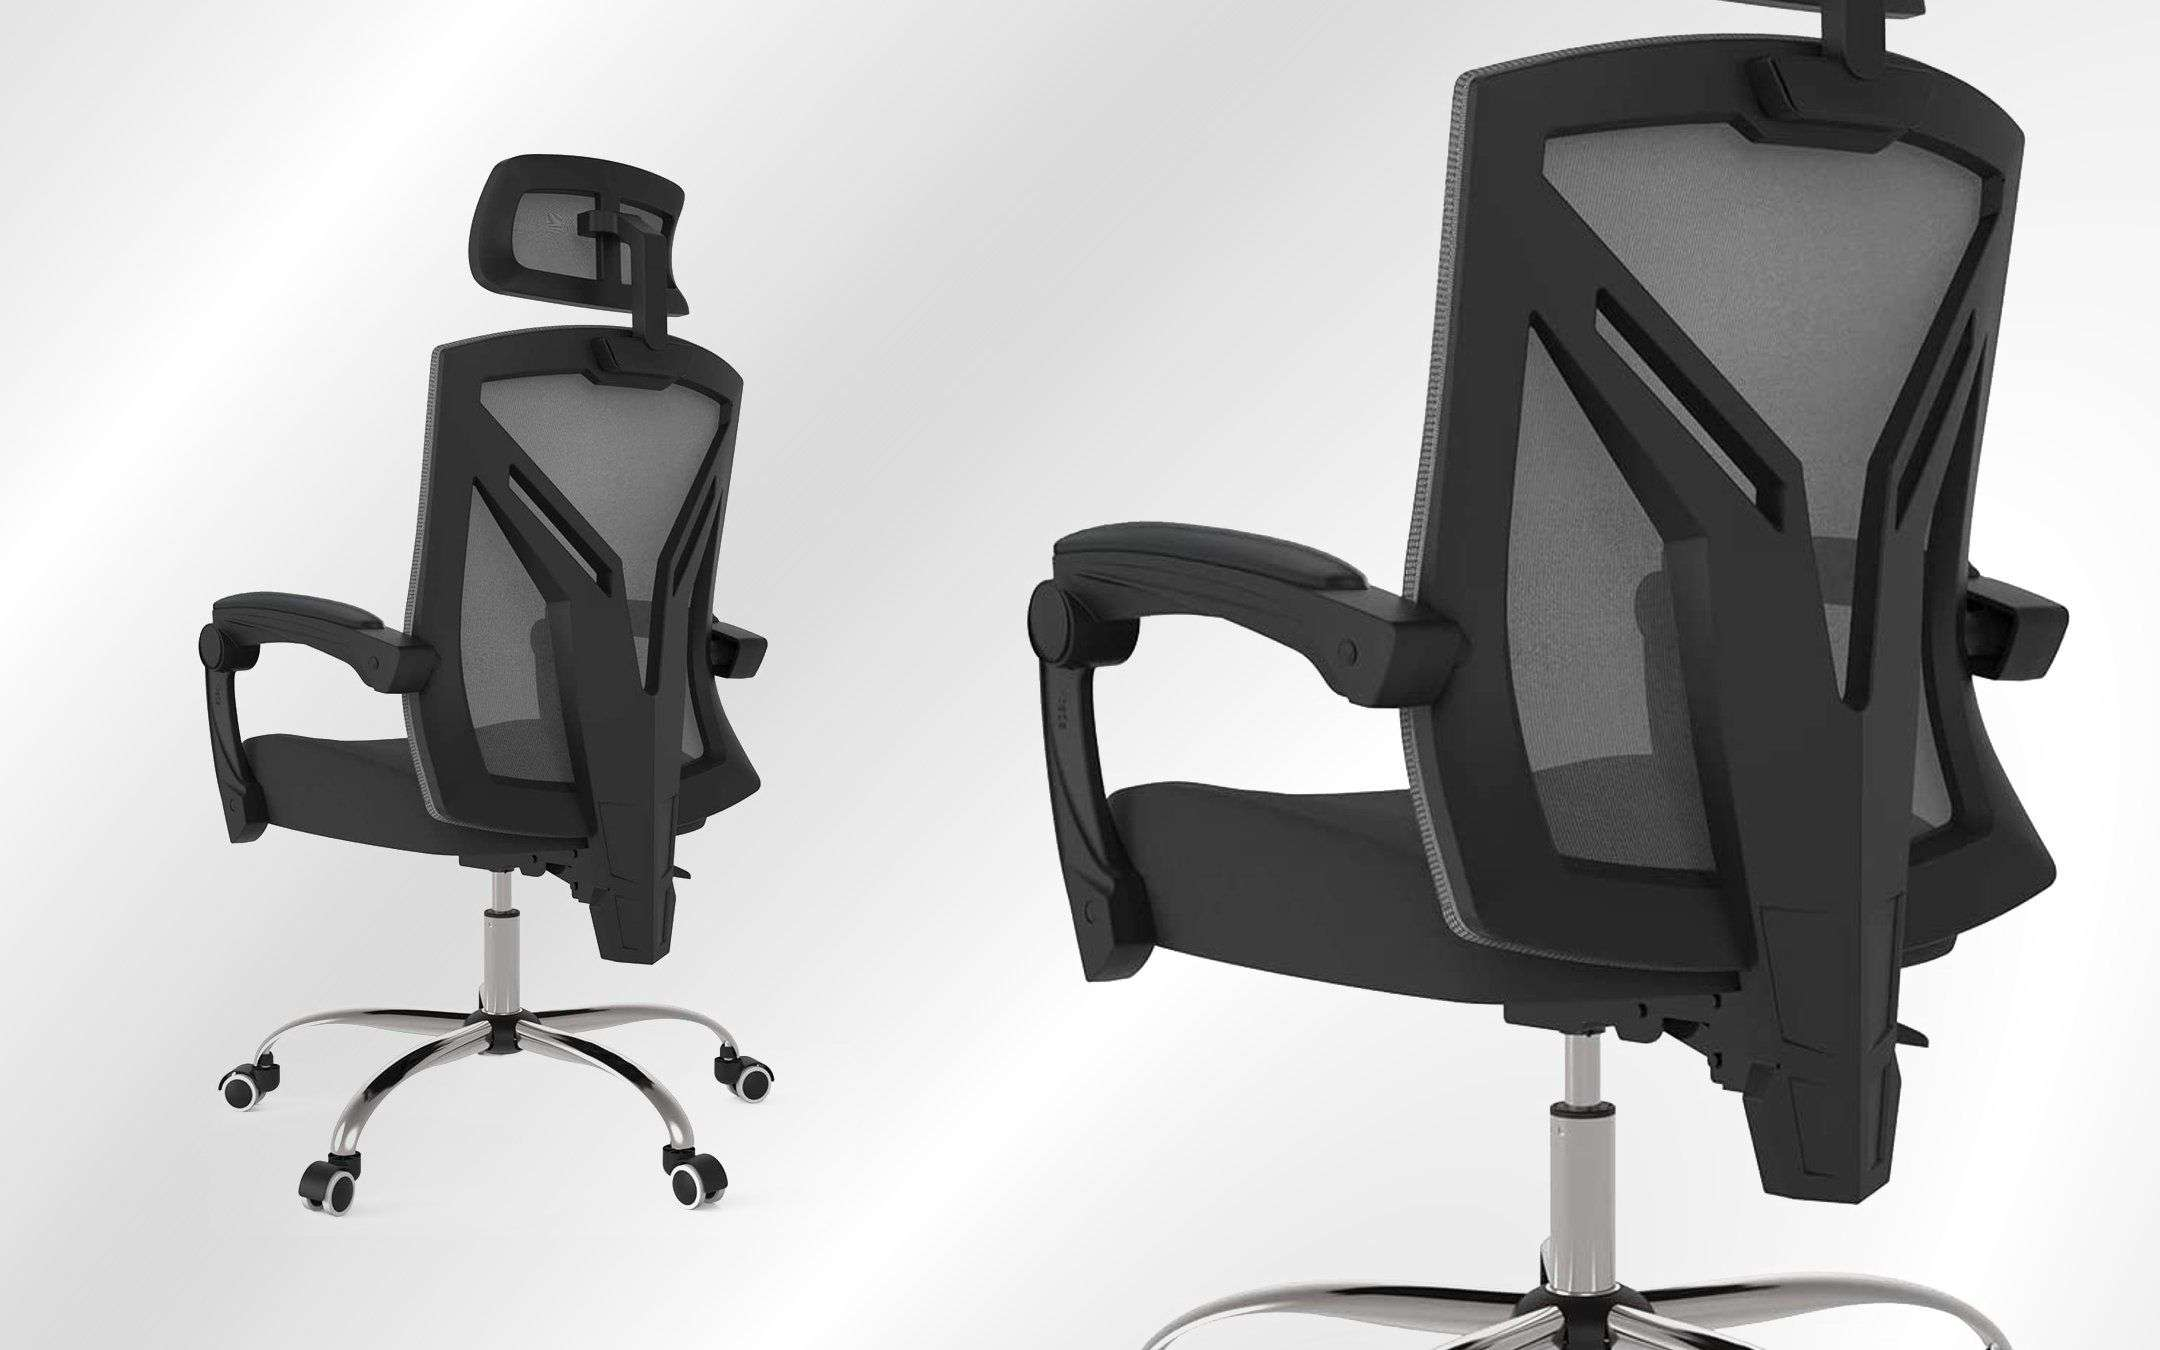 Ergonomic chair, here's the discount: let's get comfortable